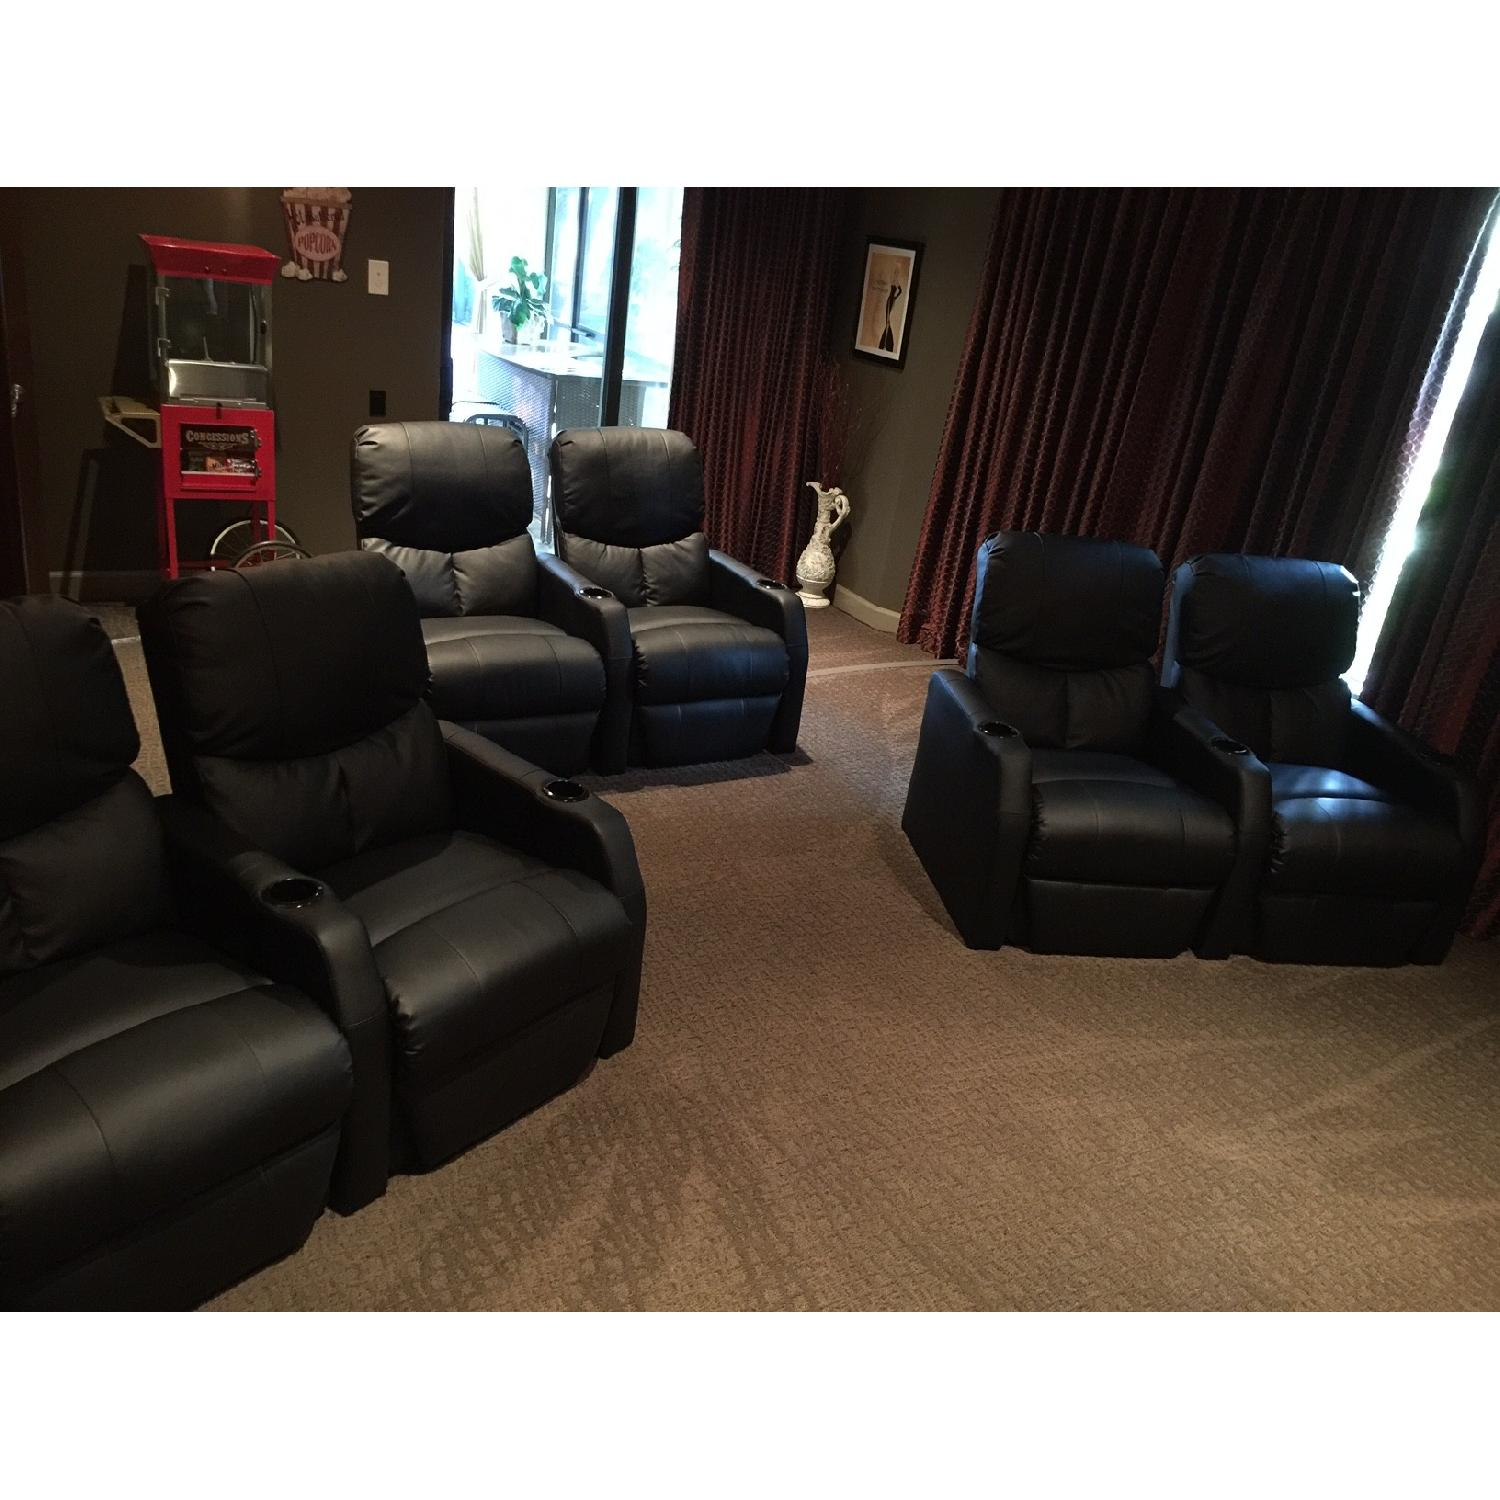 SeatCraft Home Theater Recliners - image-3